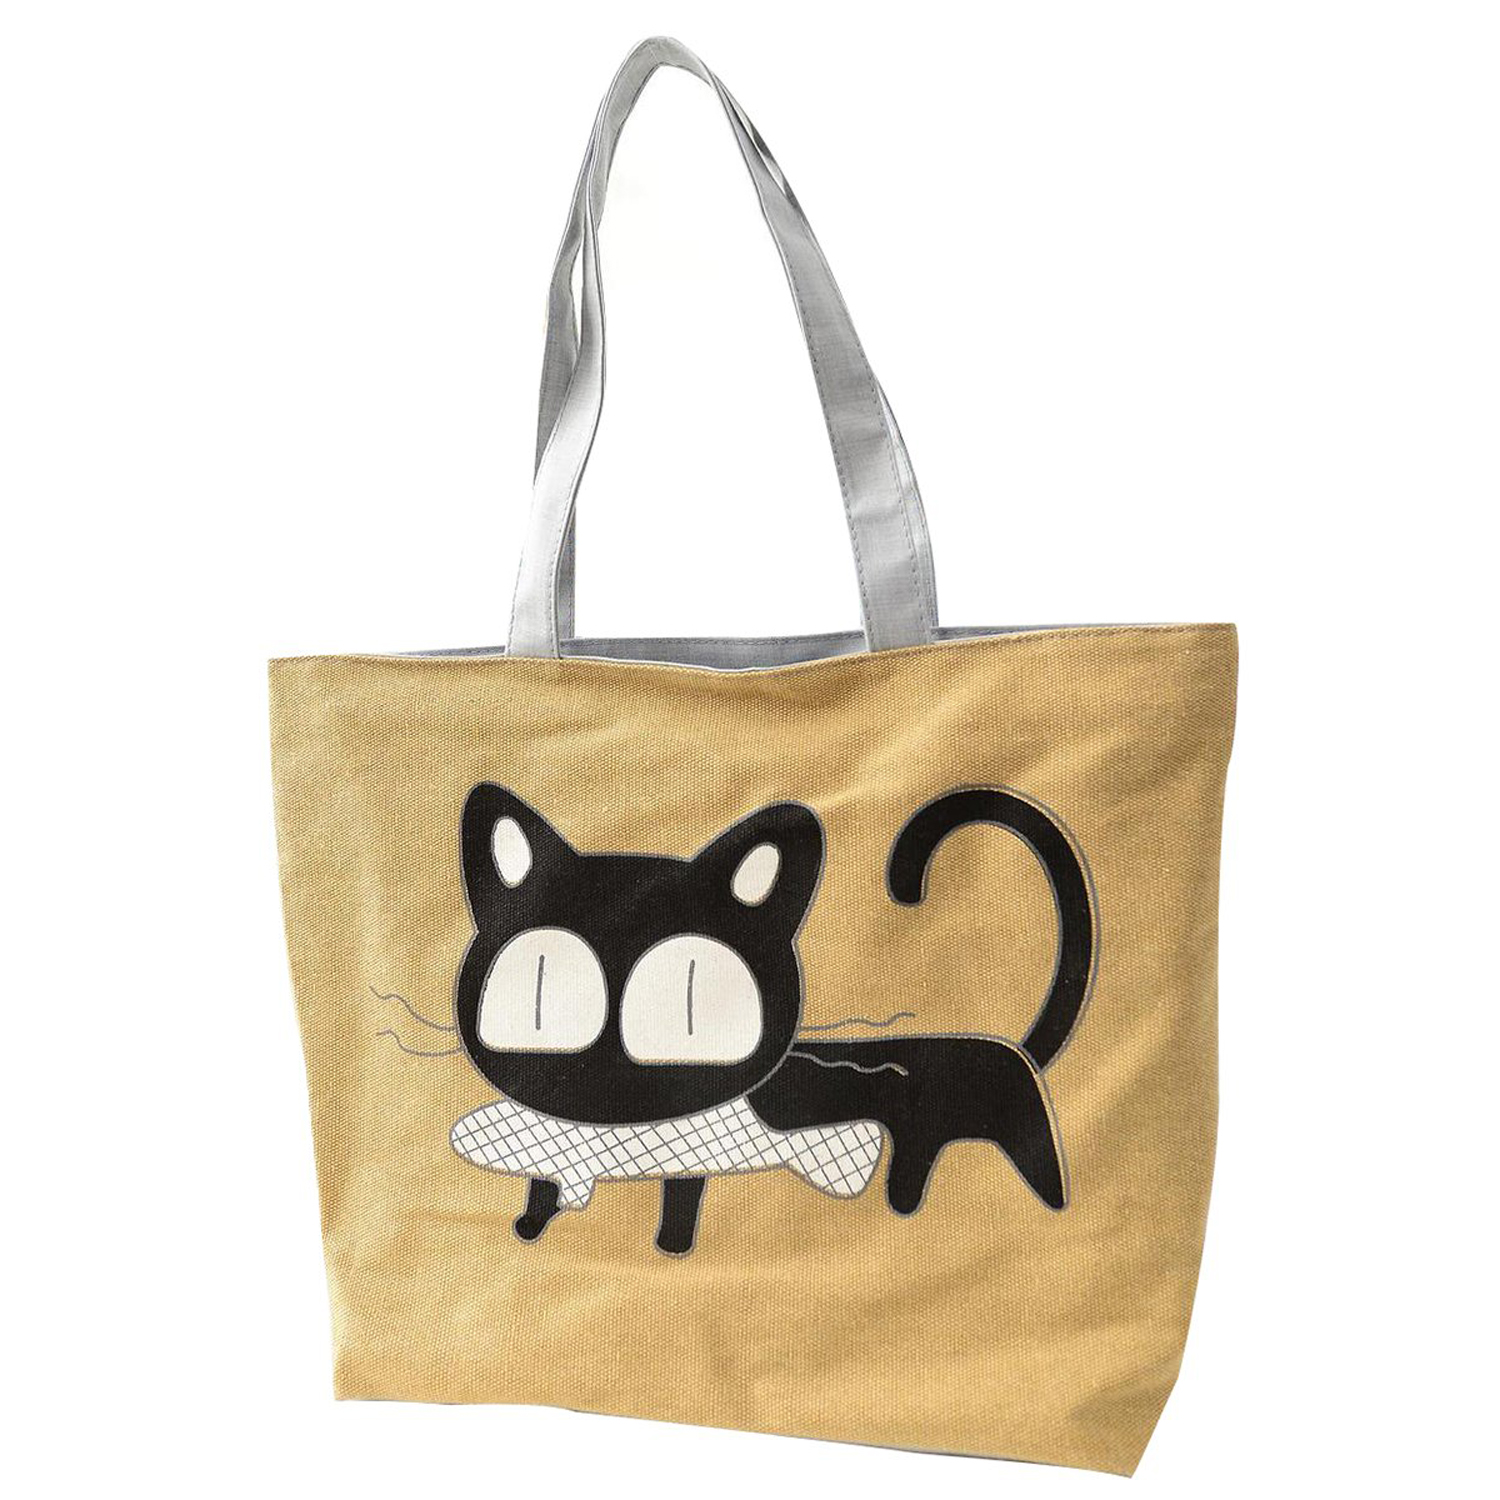 Girl cat eat fish shopping bag Shoulder Women Handbags beach tote bags handbags yellow